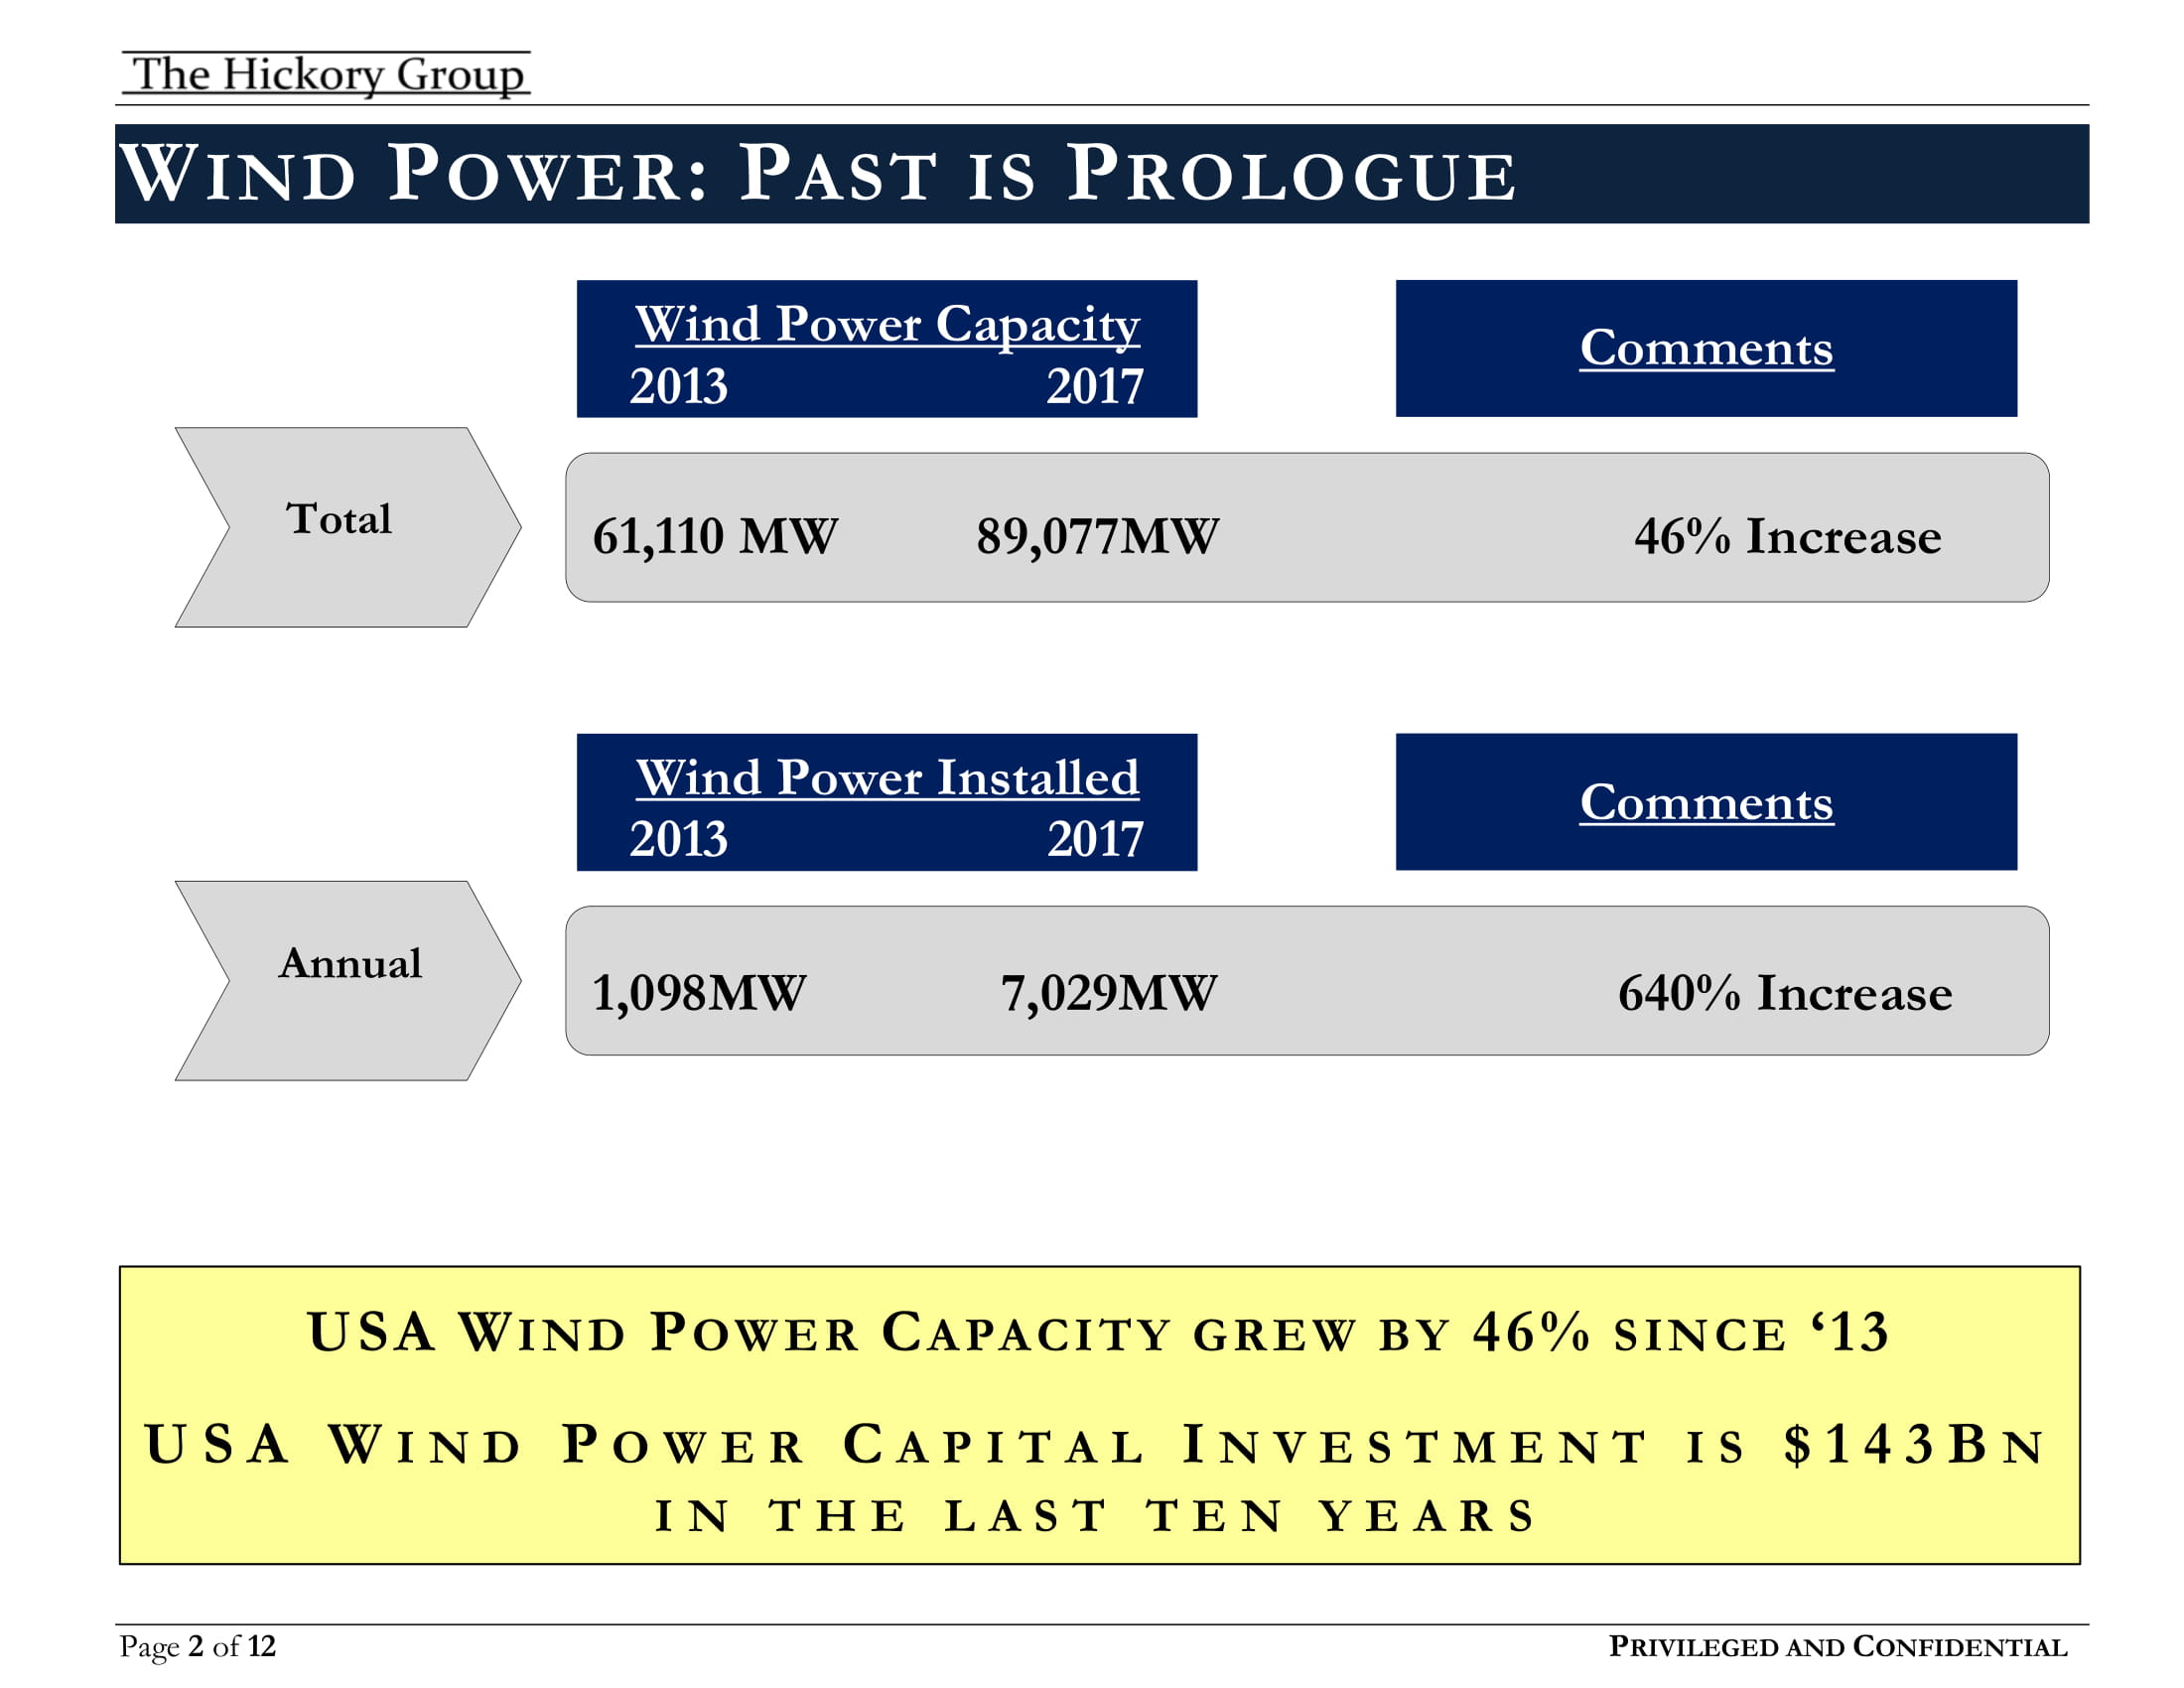 THG Wind Power Flash Report (July 2018) Privileged and Confidential copy[1]-02.jpg